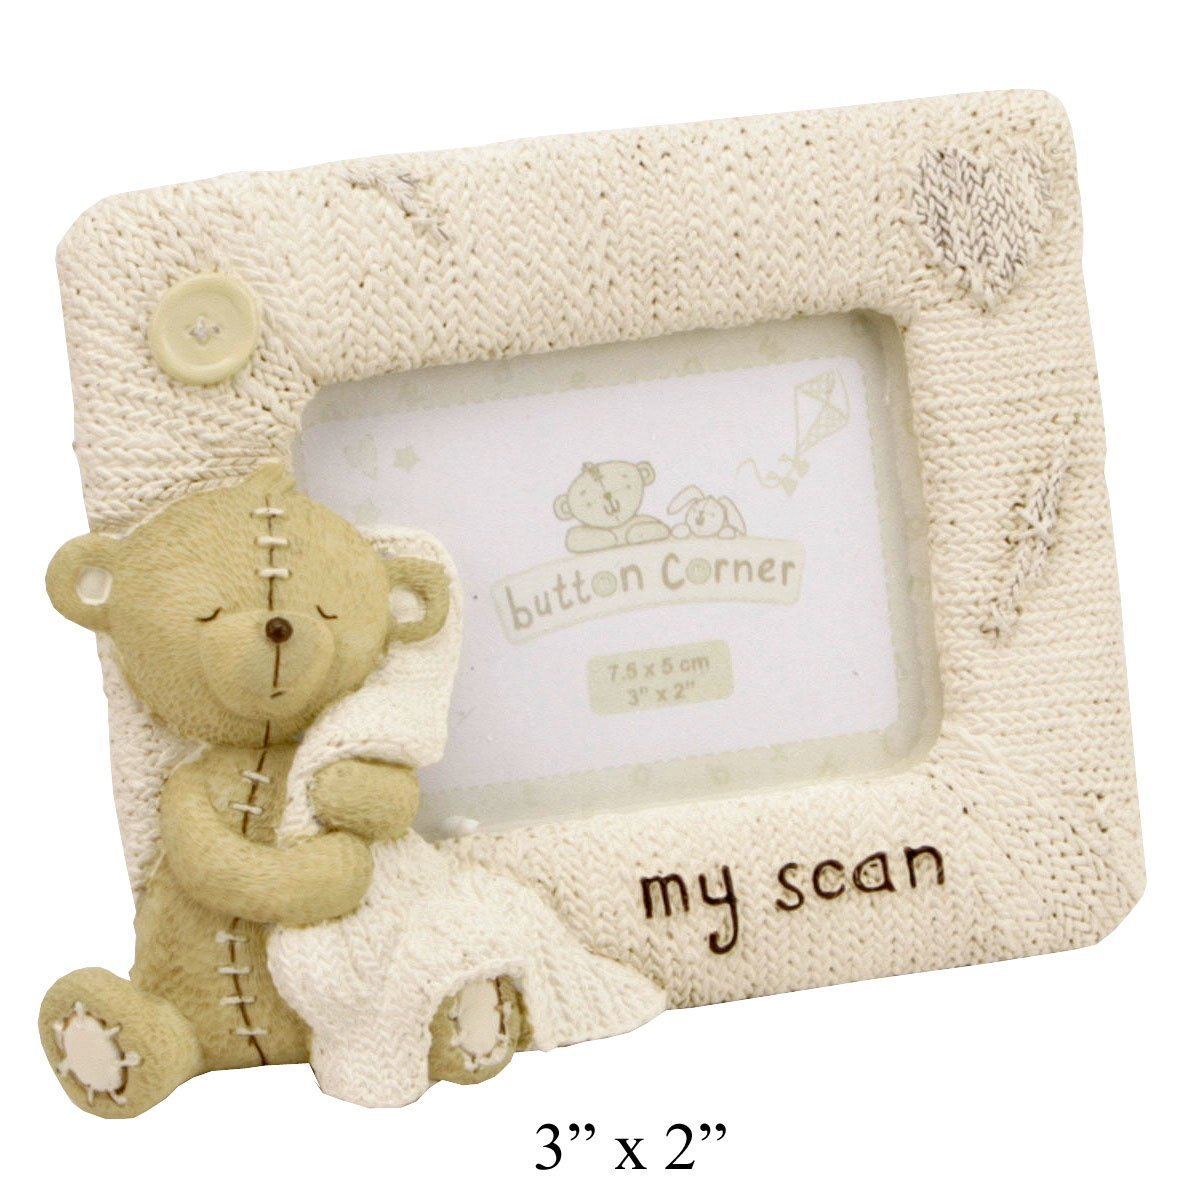 Oaktree Gifts My Scan Button Corner Resin Photo Frame 3 x 2 WB-CG1371